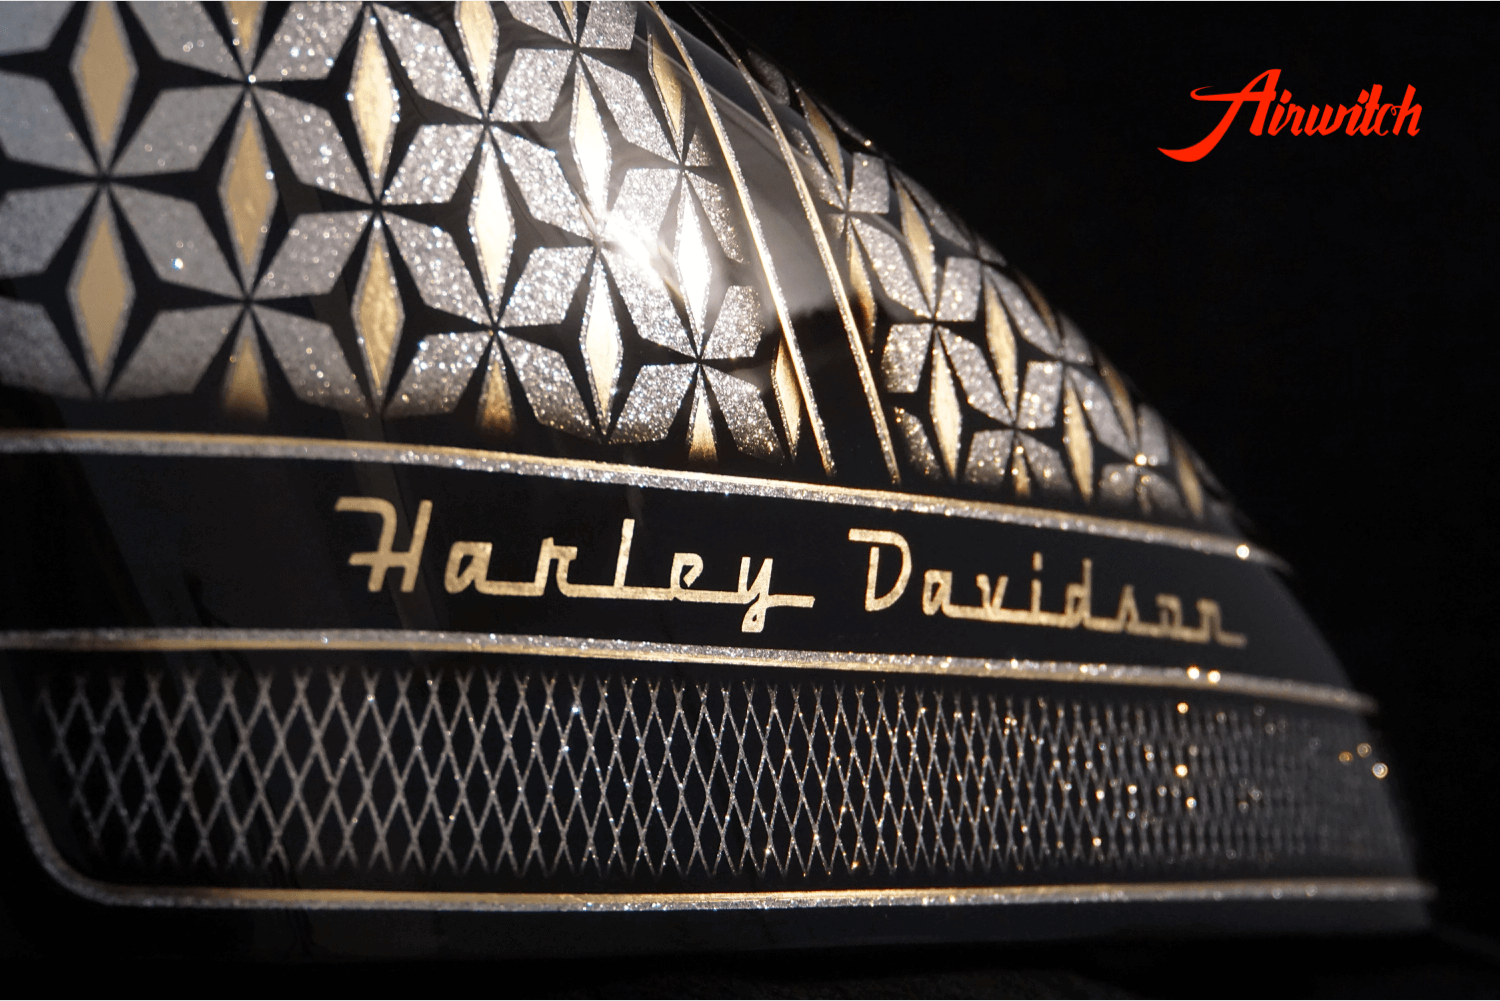 Custom Paint Harley Davidson Forty Eight 48 mit Metalflakes, Blattgold im Retro Design von Airwitch